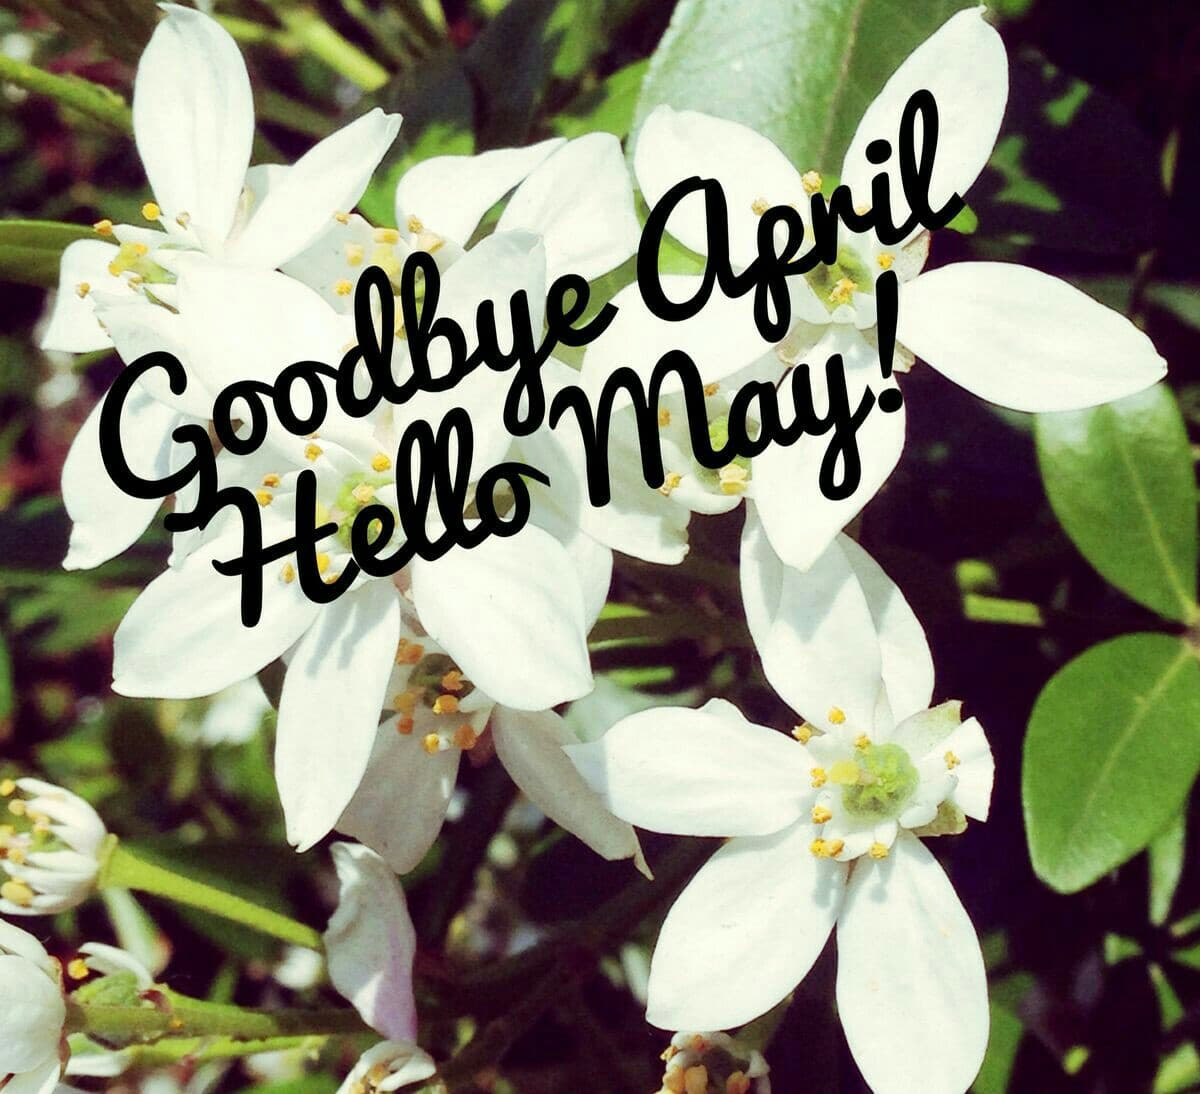 Goodbye April Hello March